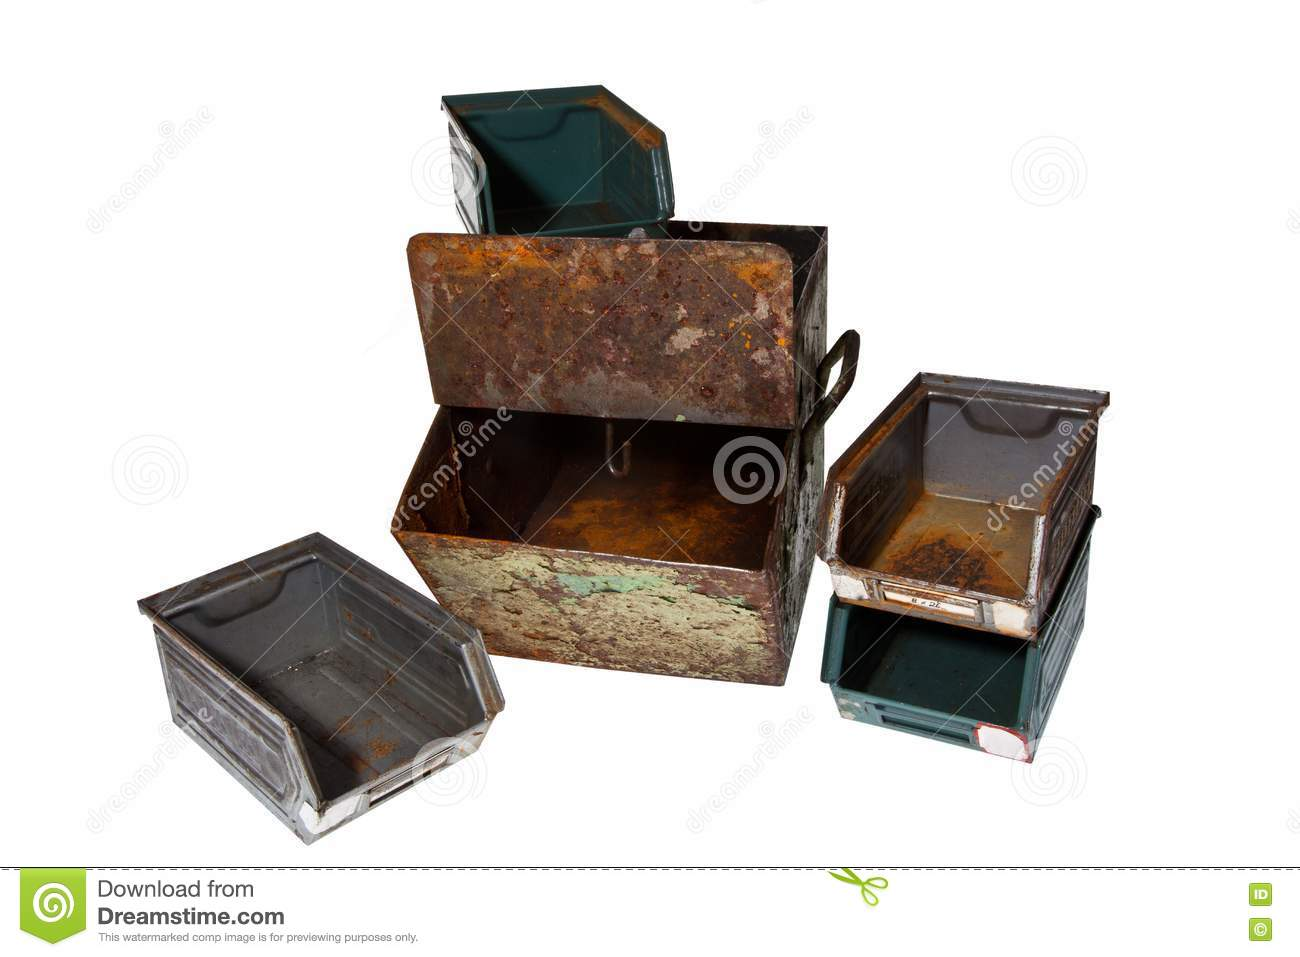 Old vintage containers stock photos image 18737933 for Decor 718 container